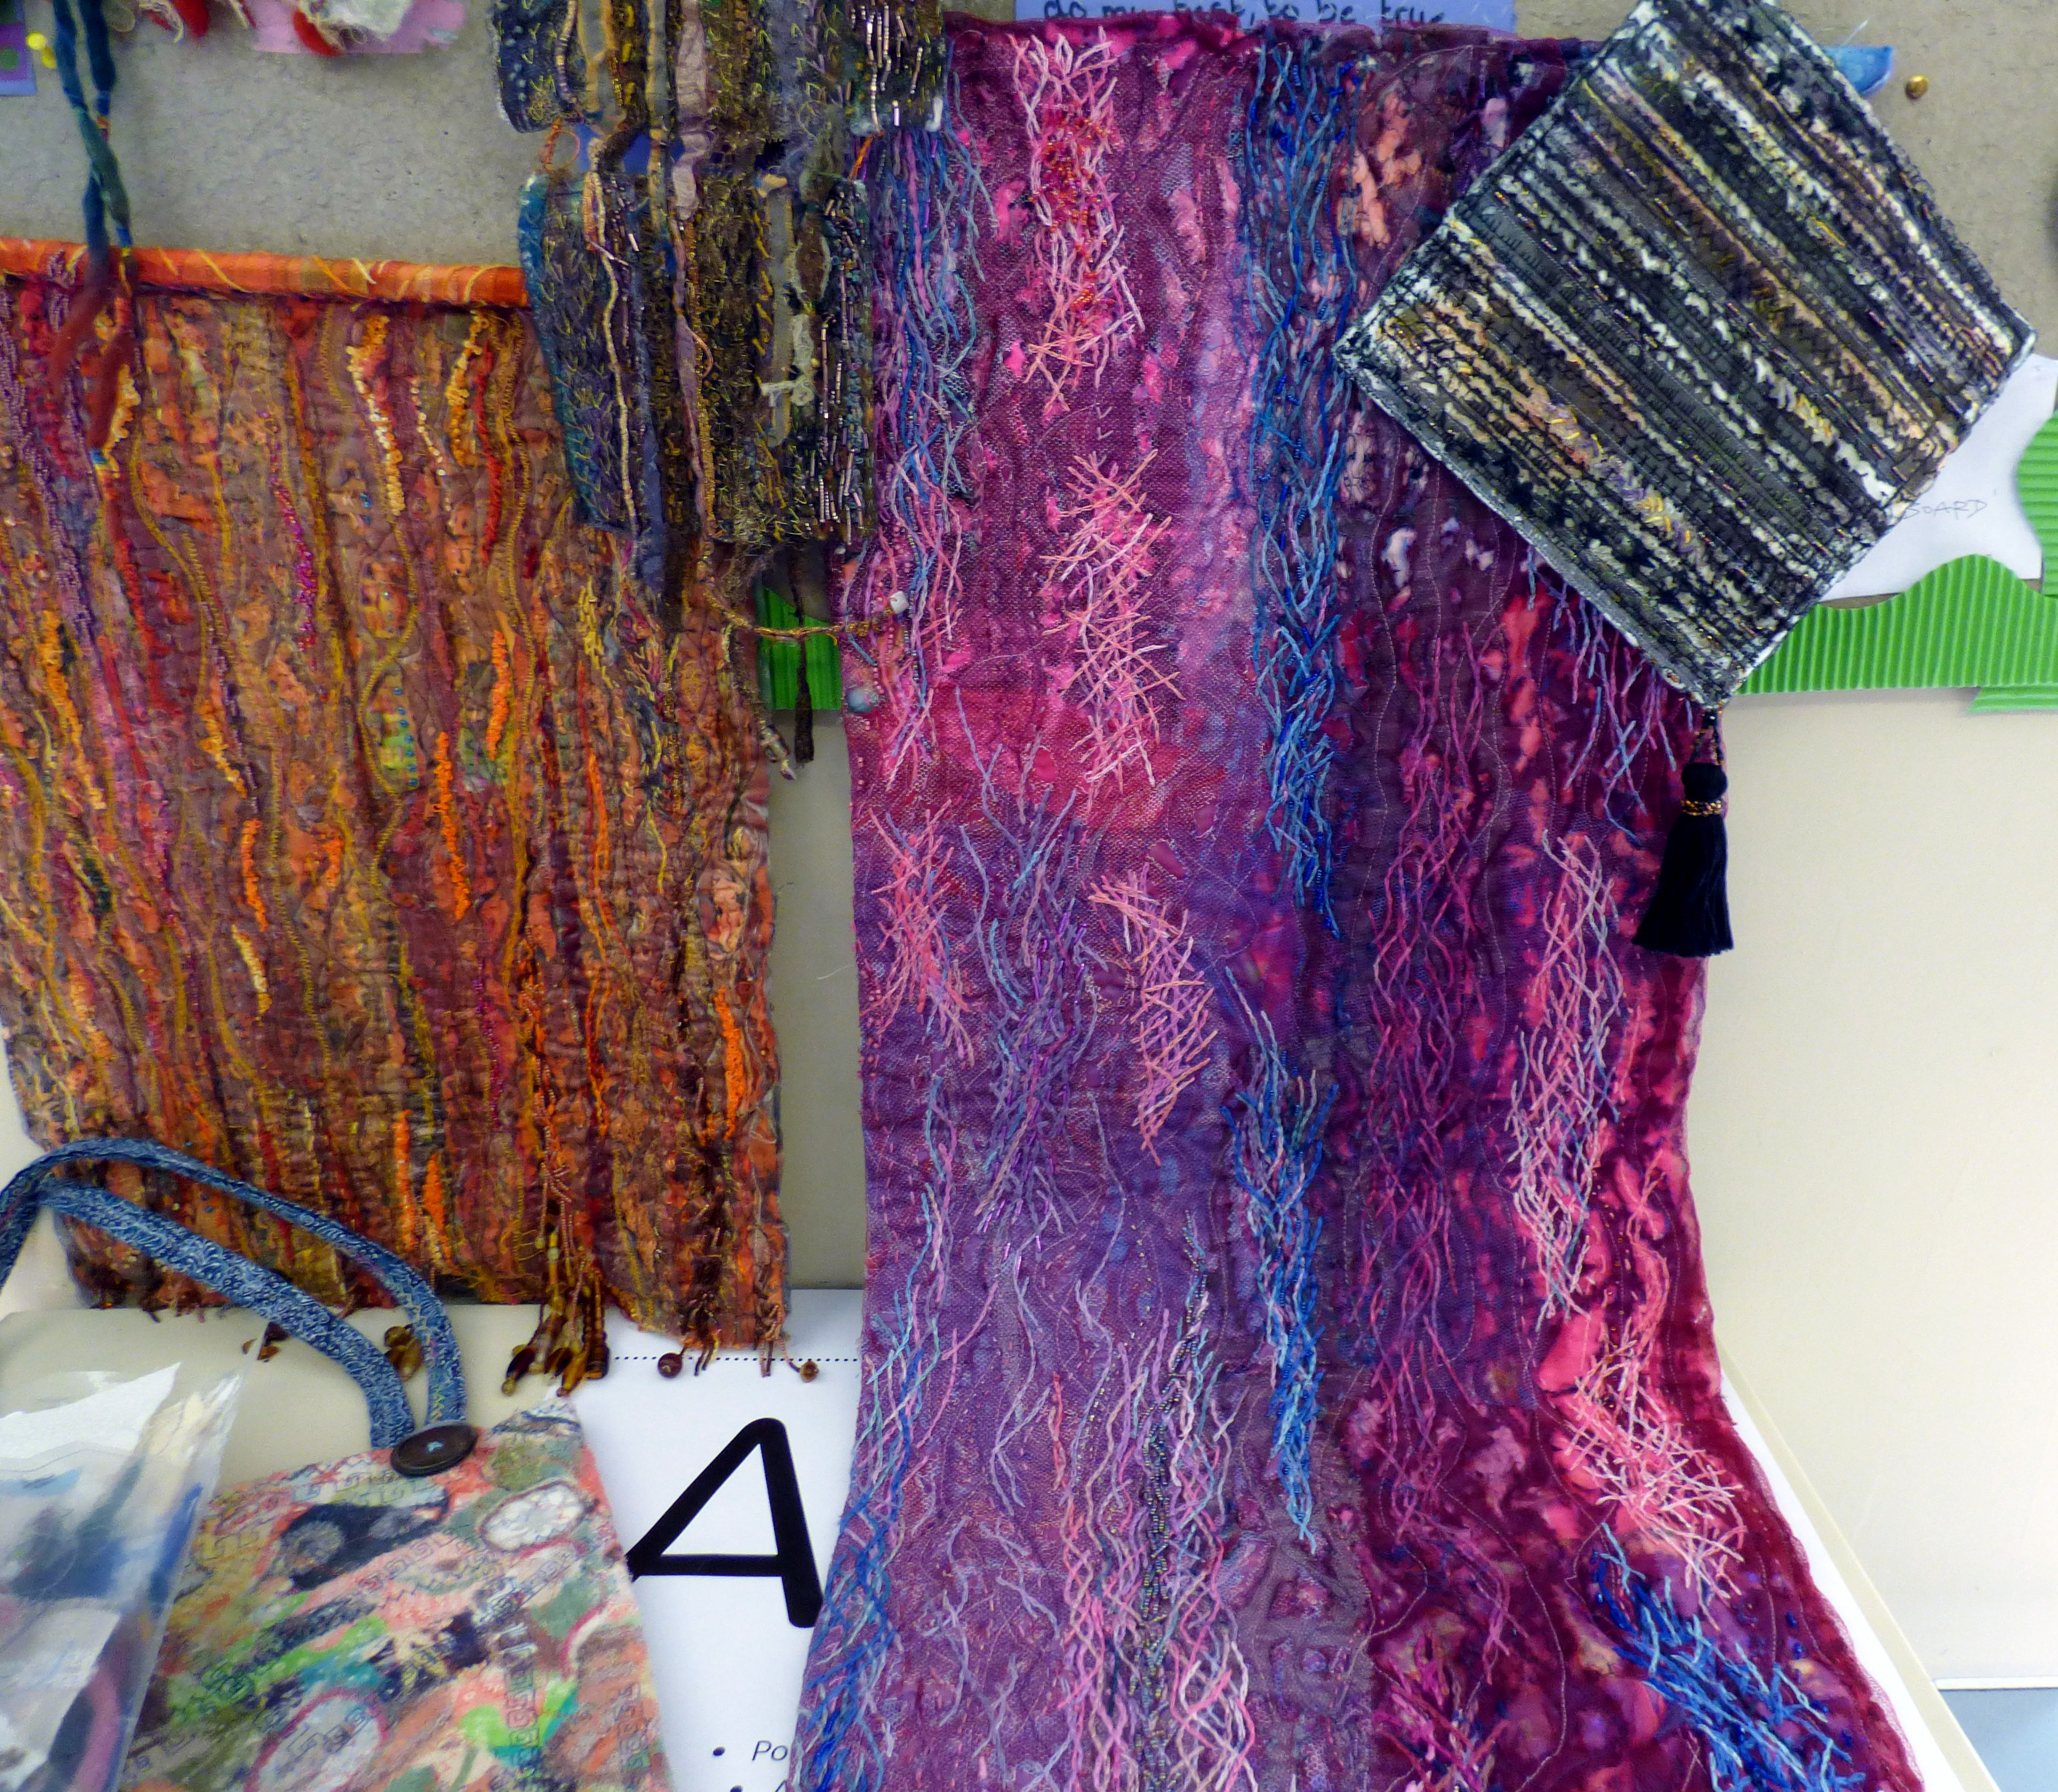 embroideries by Catherine Leighton, Macclesfield EG